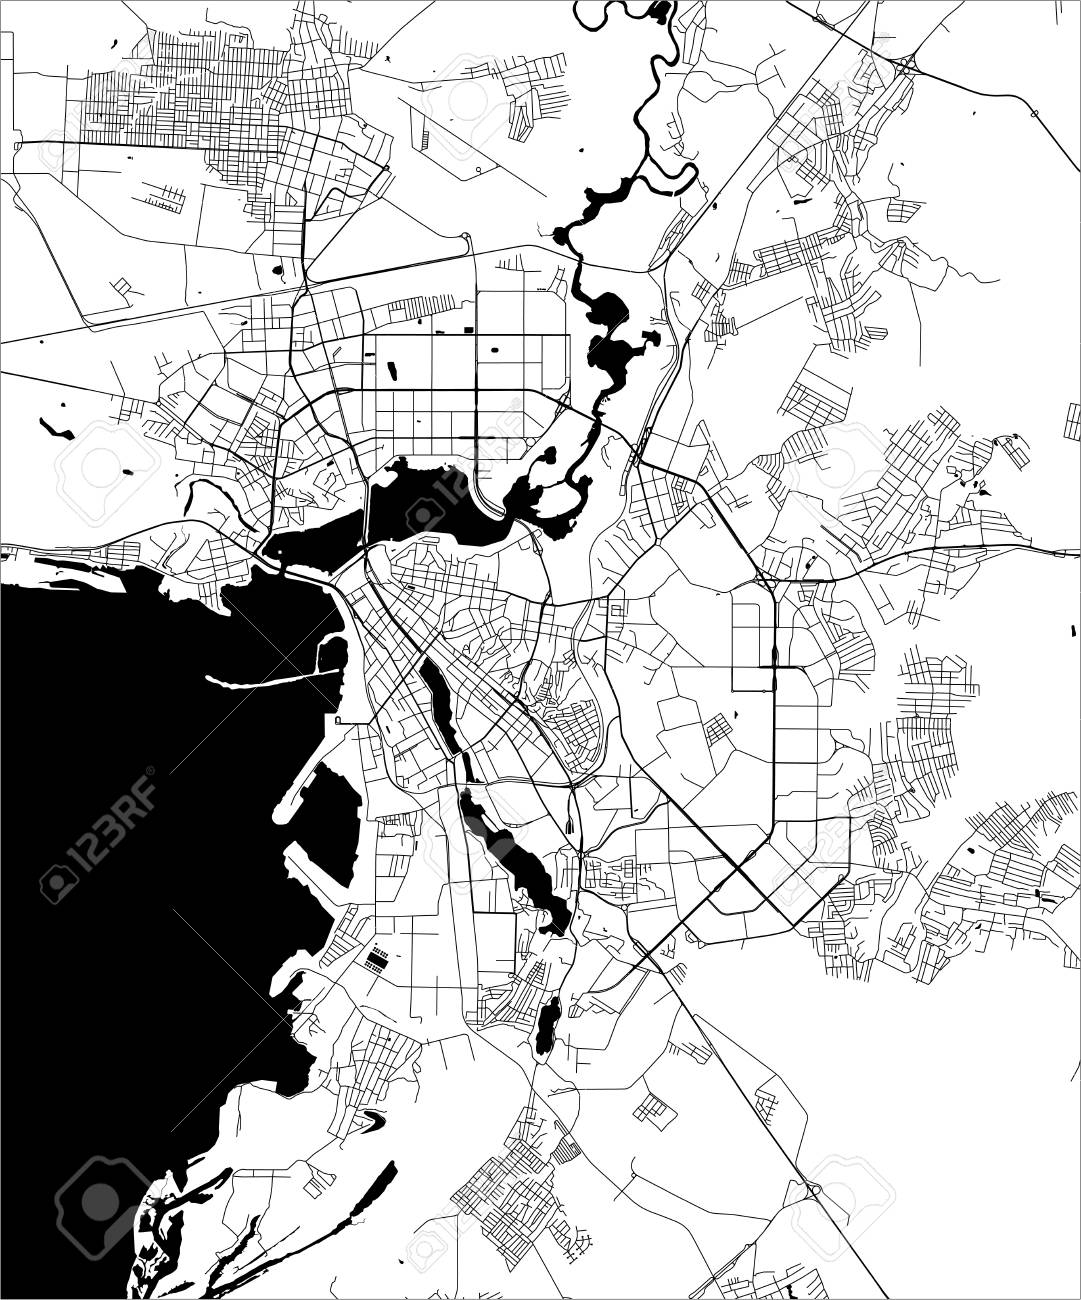 vector map of the city of Kazan, Tatarstan, Russia on tynda russia map, volsk russia map, serpukhov russia map, volga river, ufa russia map, tatarstan russia map, elista russia map, vladivostok map, tula russia map, markovo russia map, grozny russia map, novgorod russia map, yurga russia map, bashkiria russia map, saint petersburg, crimea russia map, samara russia map, nizhny novgorod, warsaw russia map, yaroslavl russia map, irkutsk map, moscow map, astrakhan russia map,